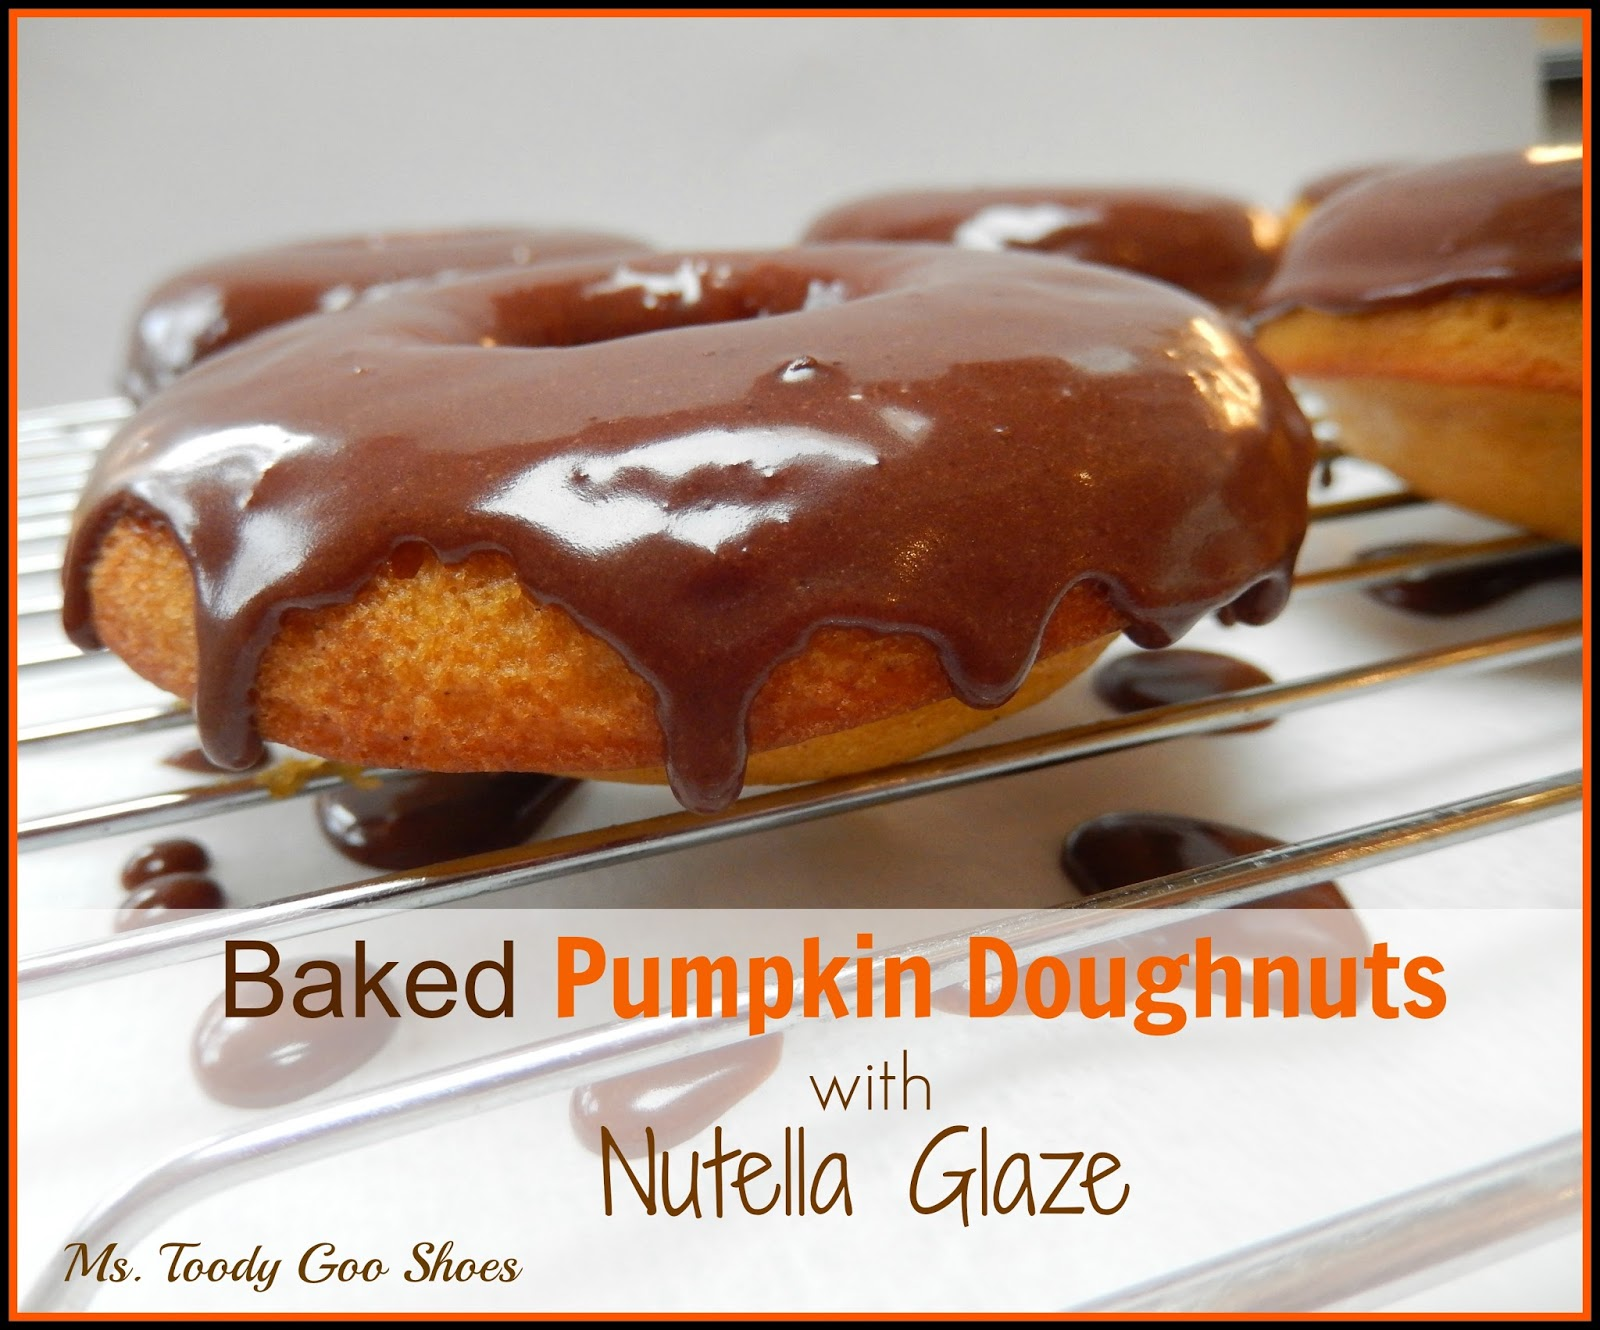 Pumpkin Cakes With Nutella Glaze Recipe — Dishmaps